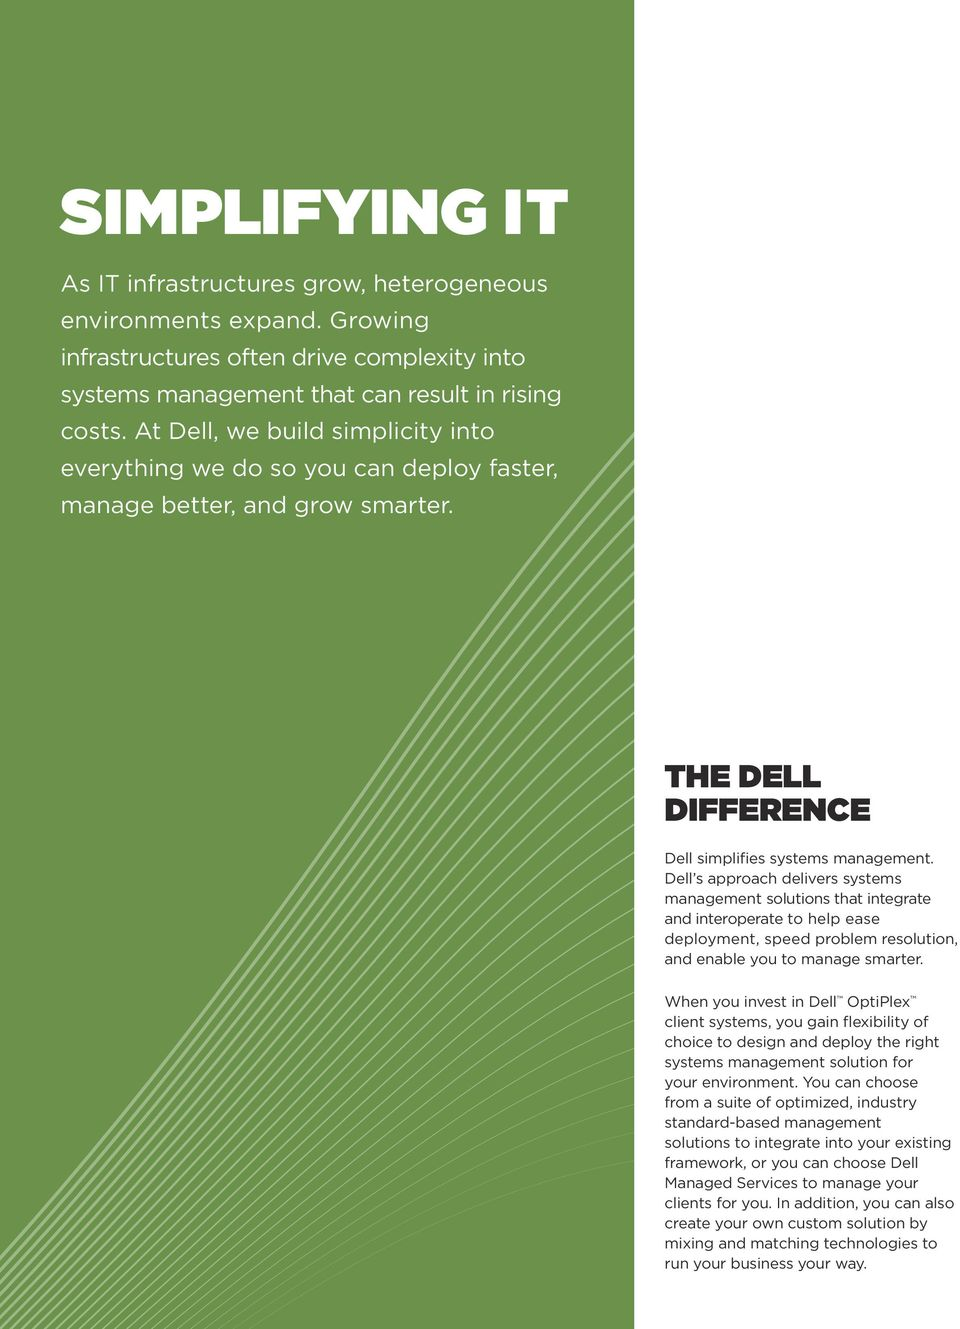 Dell s approach delivers systems management solutions that integrate and interoperate to help ease deployment, speed problem resolution, and enable you to manage smarter.